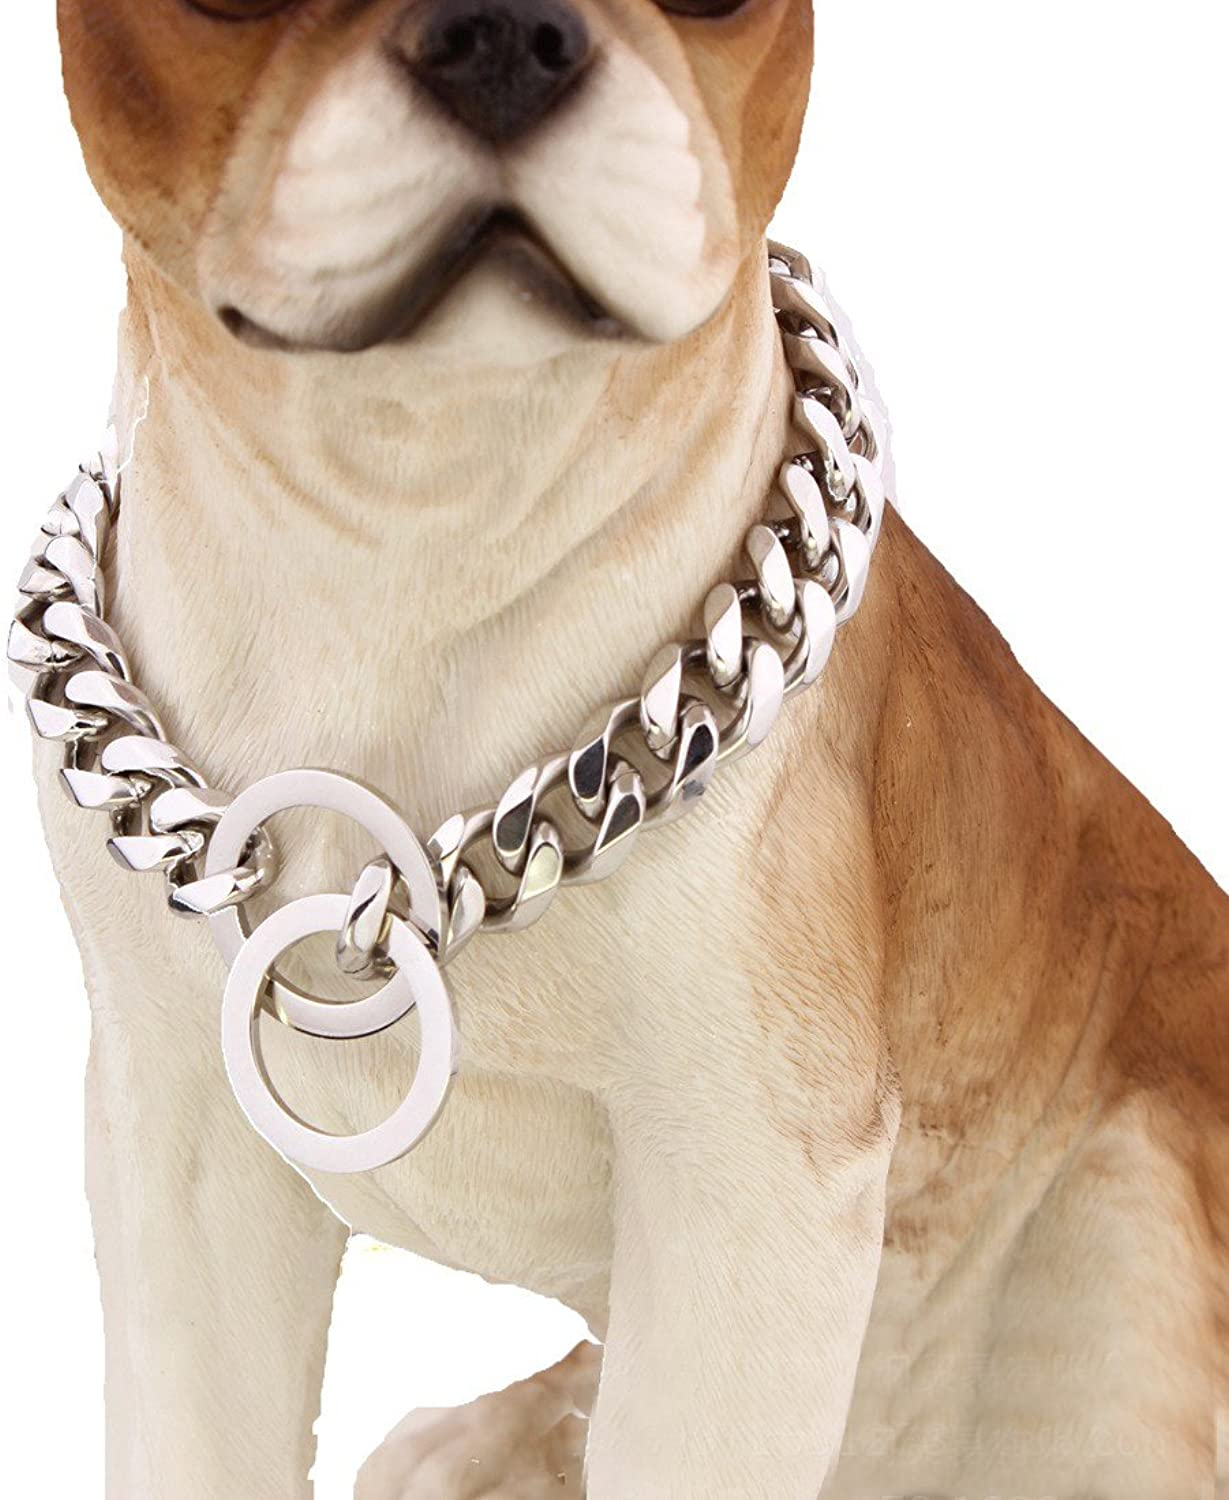 Pet Online Dog collar mirror polished stainless steel p chain titanium steel chain necklace pet dog training leash Tow Collar 15mm,20